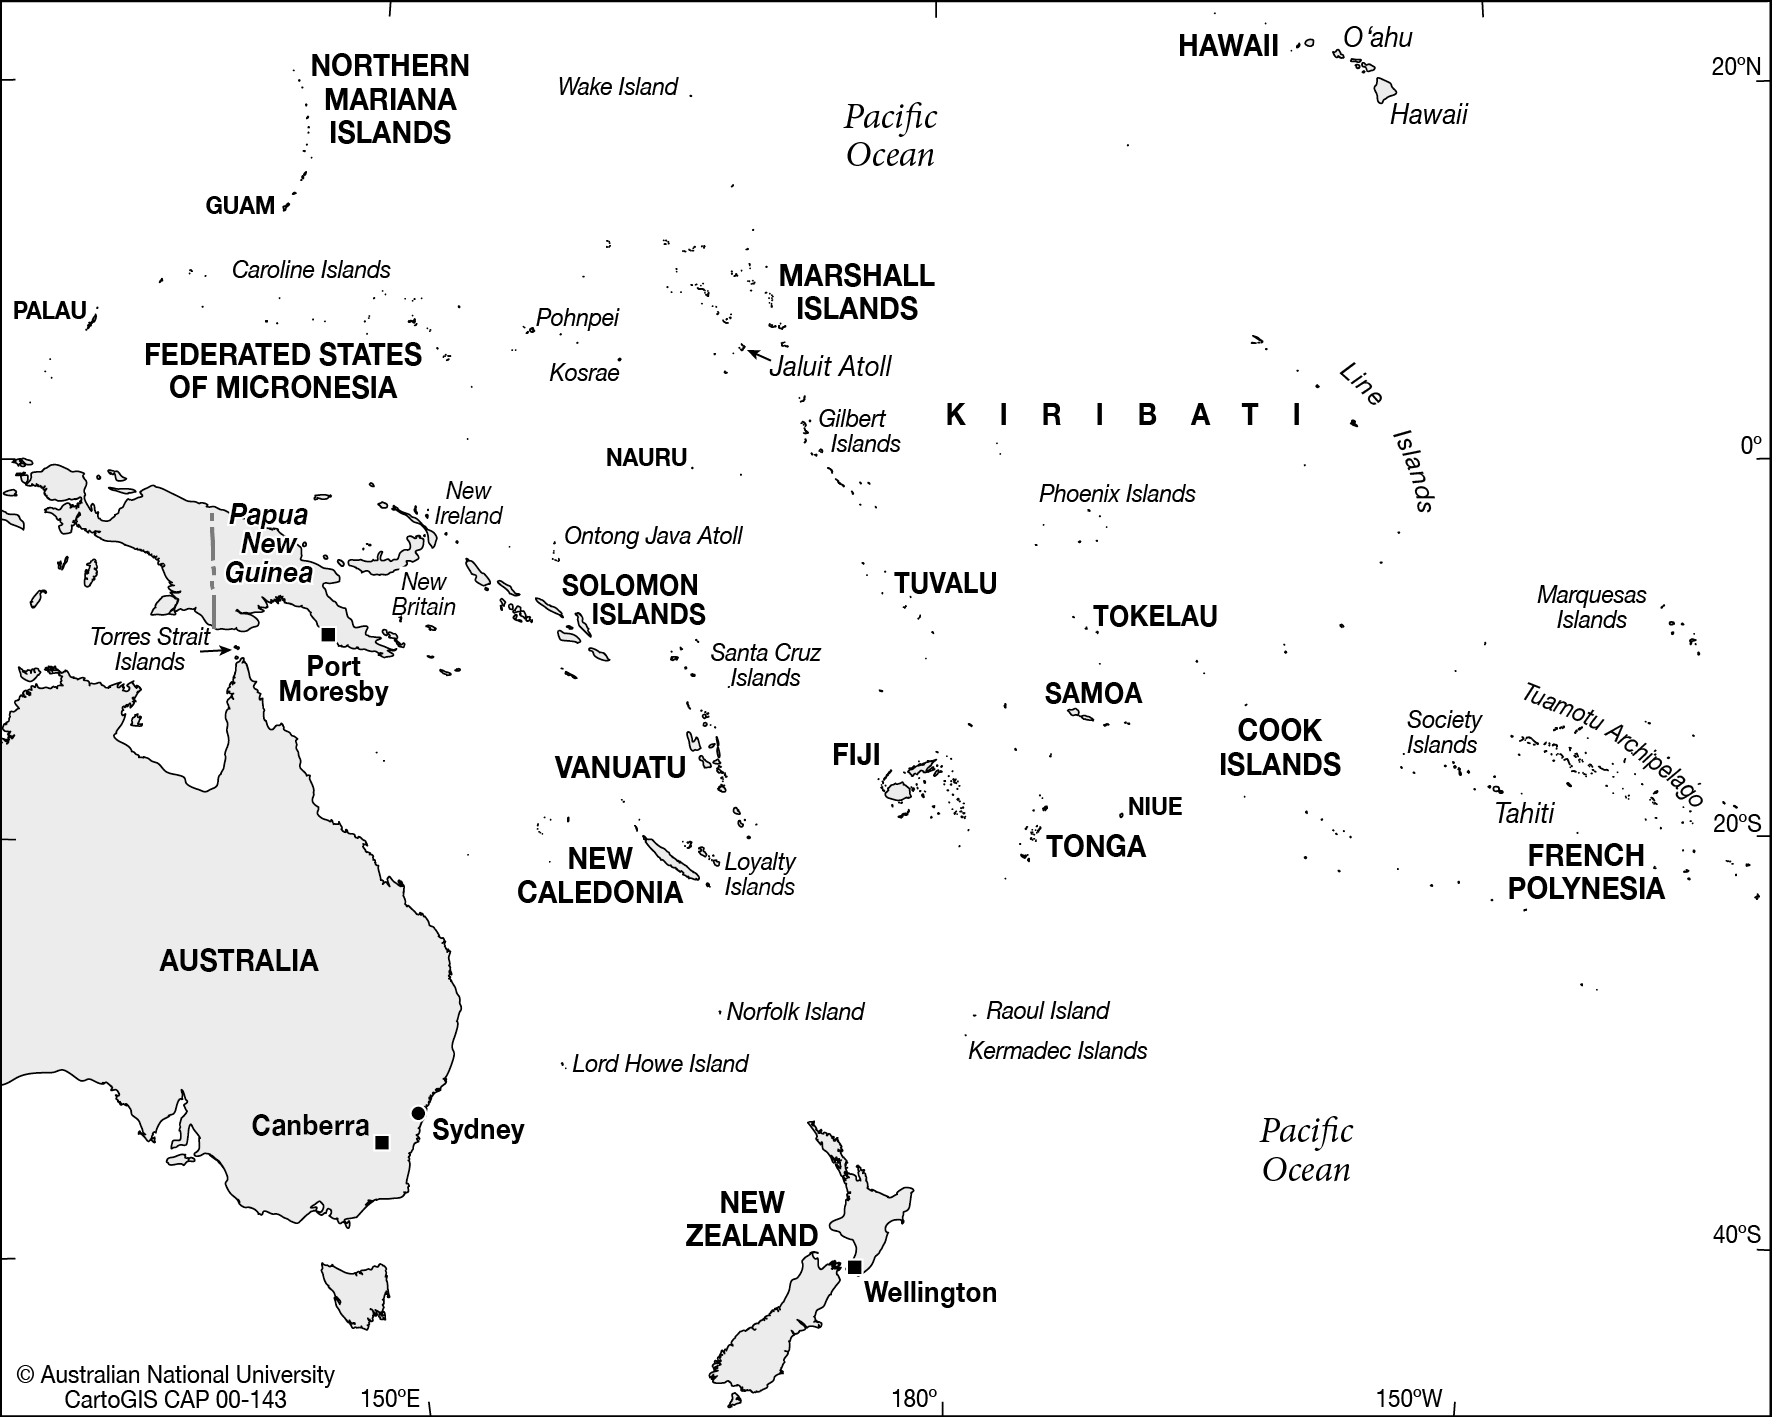 Blank Map South Pacific Islands Southwest Pacific